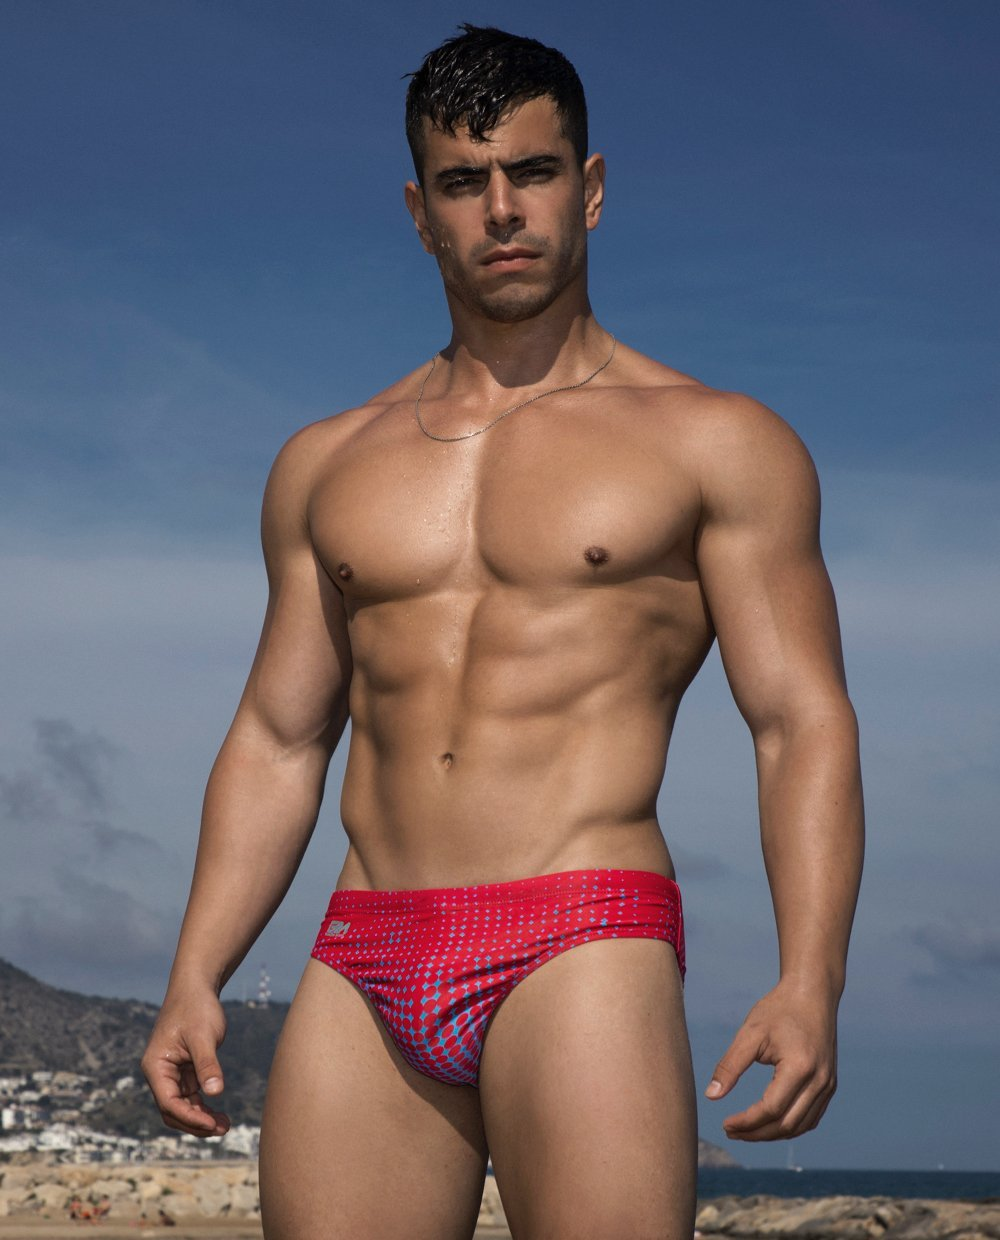 KINETIC Swim Brief - Garçon Underwear sexy men's underwear Swim Brief Garçon Underwear